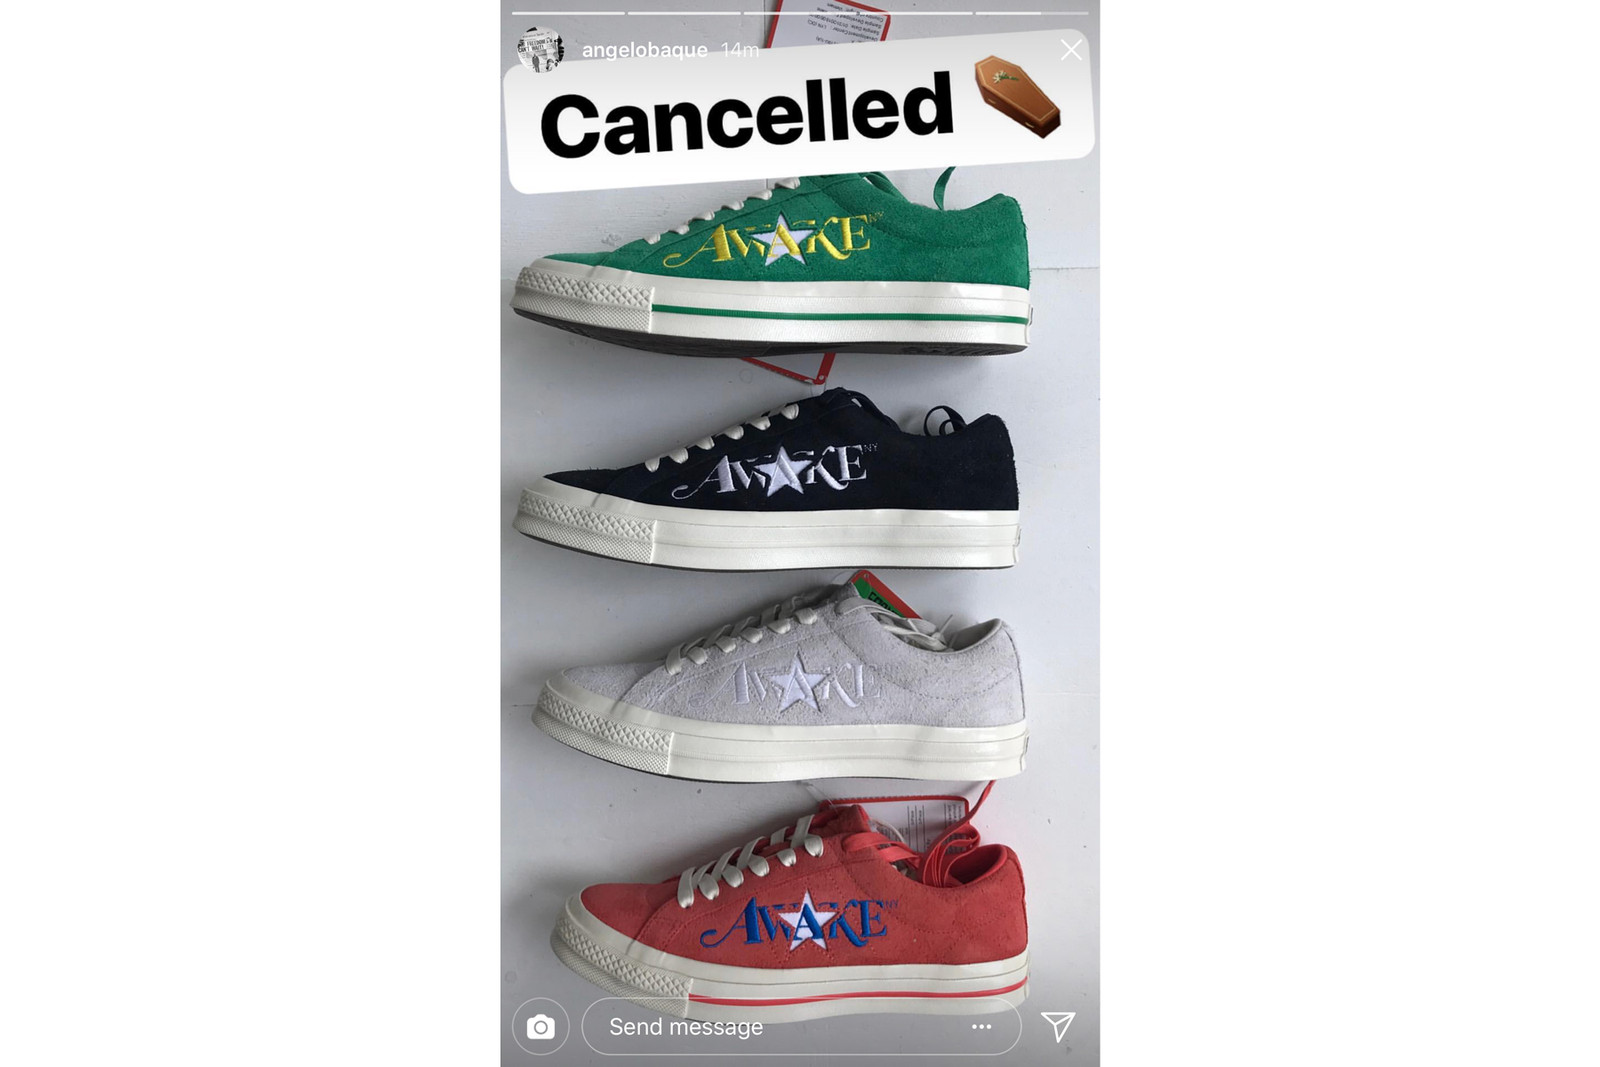 Angelo Baque Cancelled Awake Converse One Star Collaboration may 25 2018